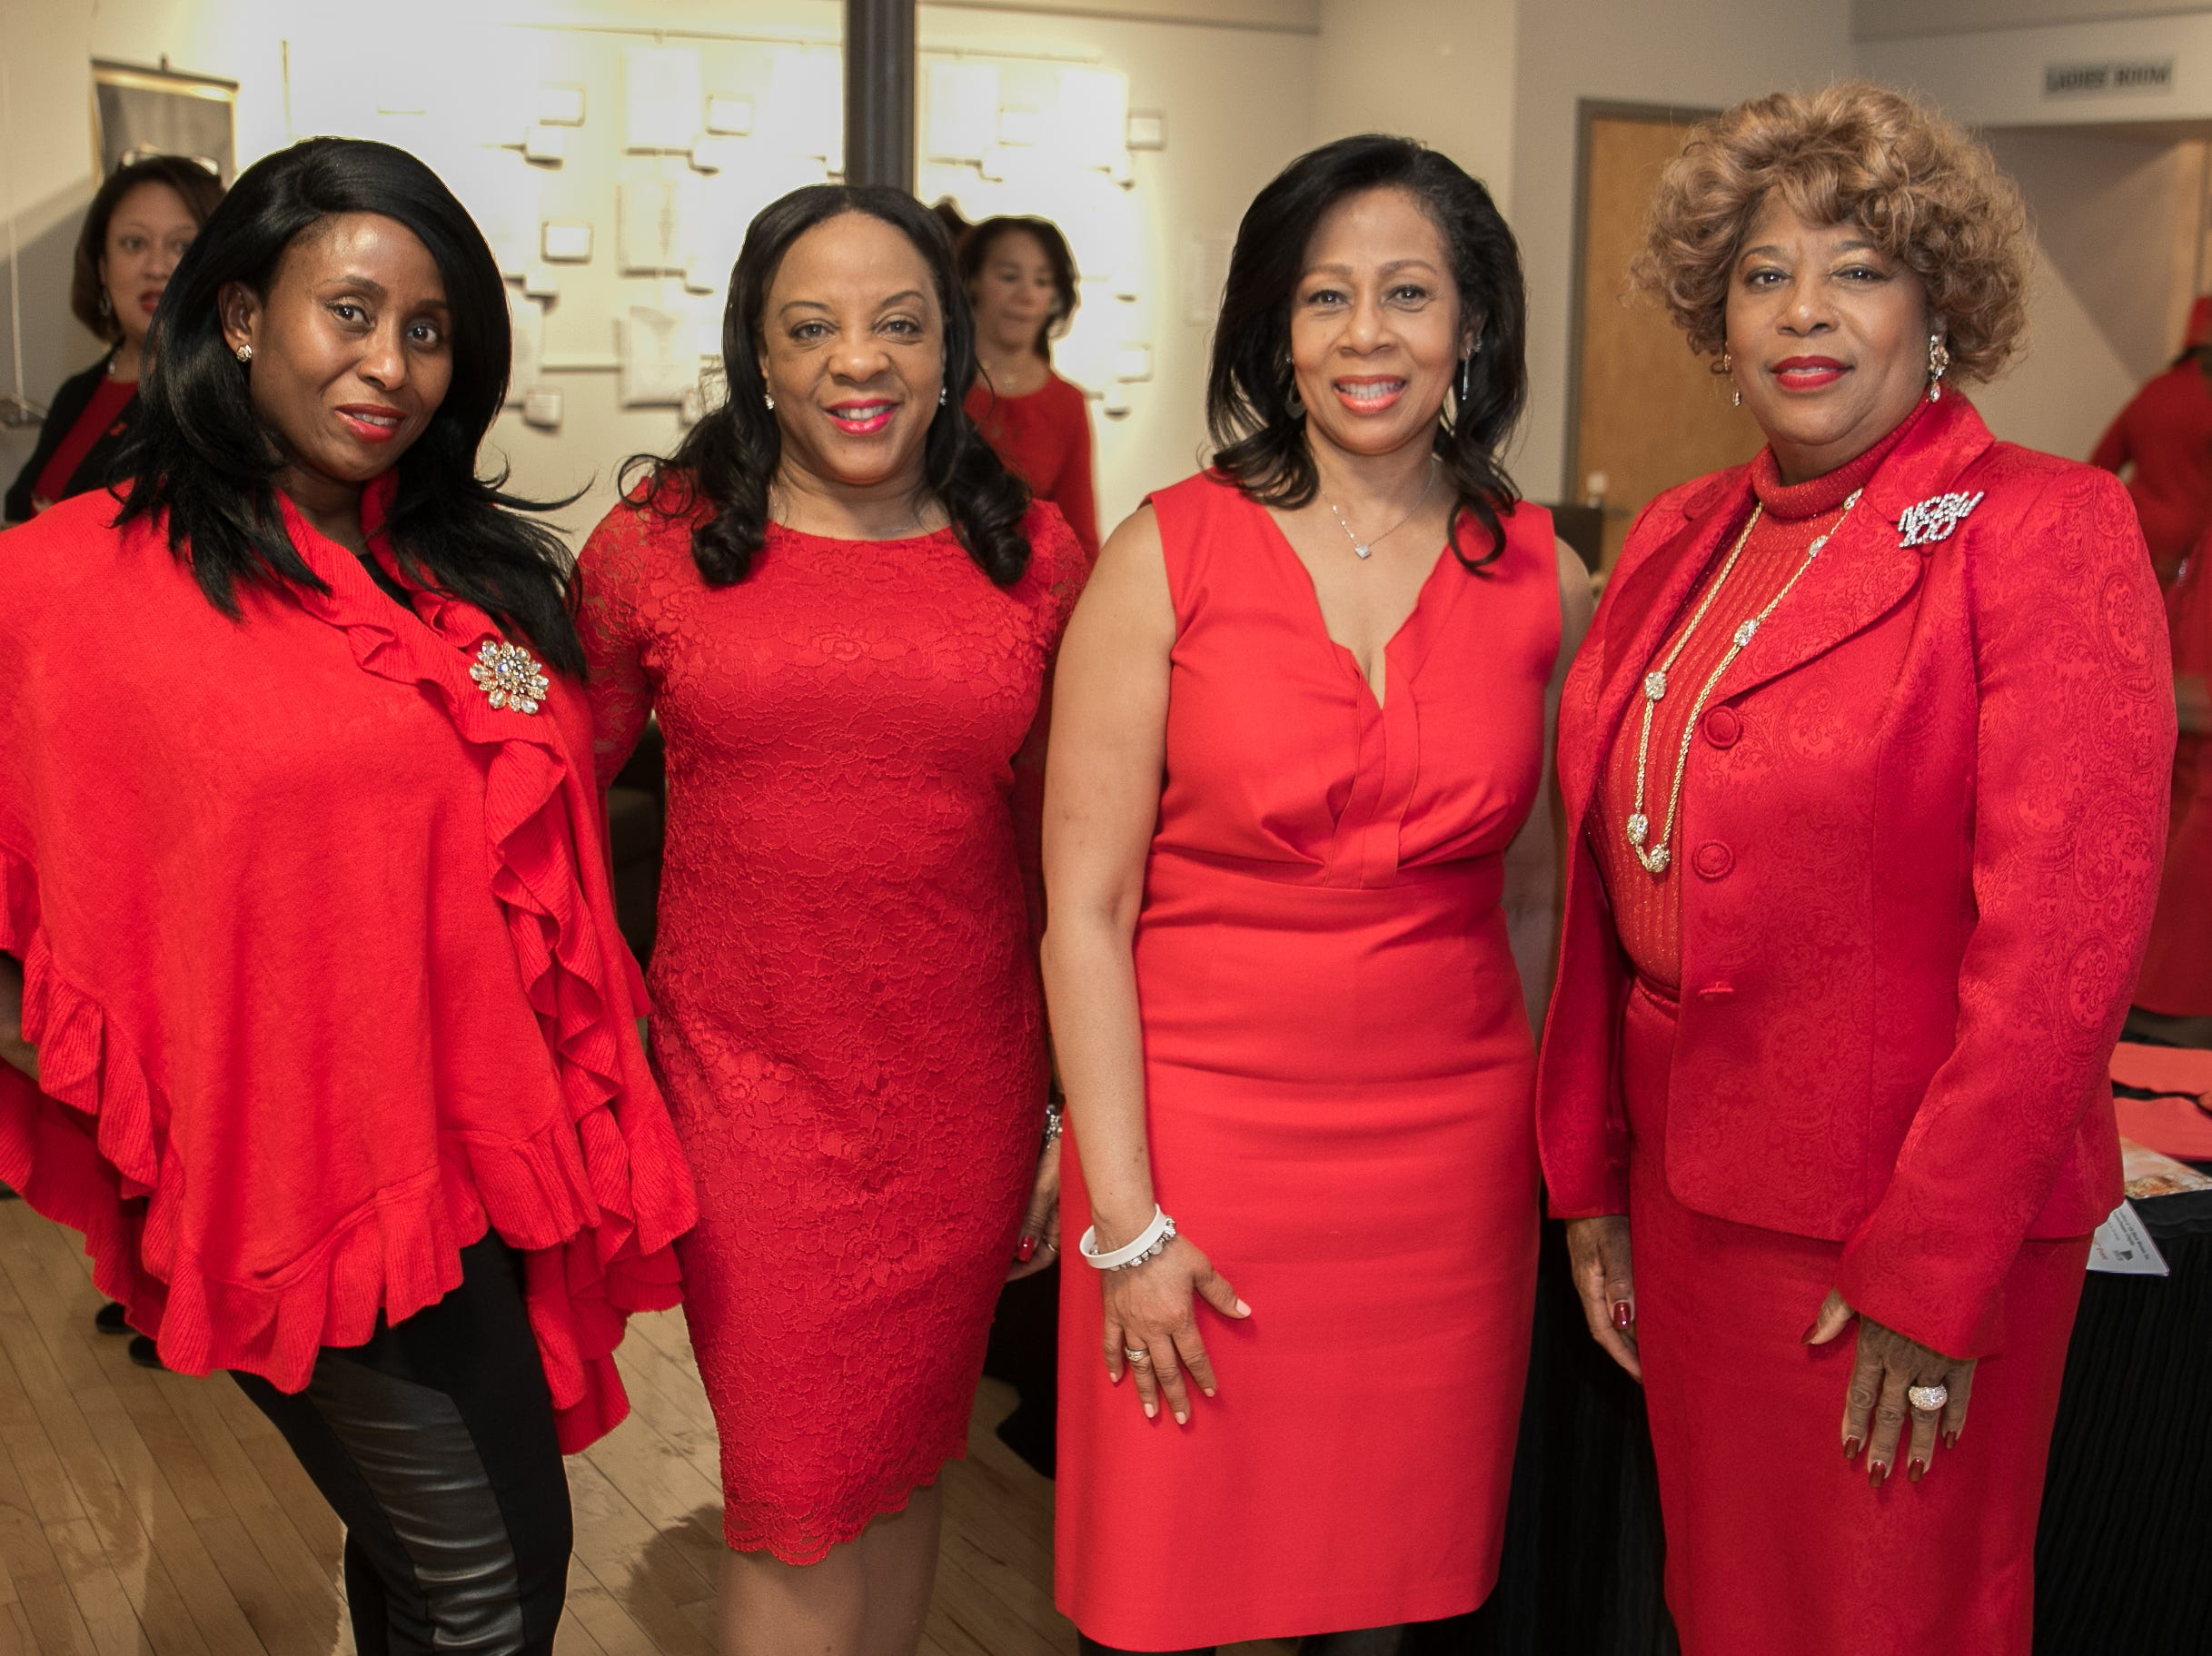 Michelle Okolo, Gail Baskerville-Norris,  Janice Johnson, Sonia Tracey. The National Coalition of Black Women of Bergen and Passaic Counties held its annual Heart Healthy Go Red Event at The Hackensack Performing Arts Theater. 02/01/2019